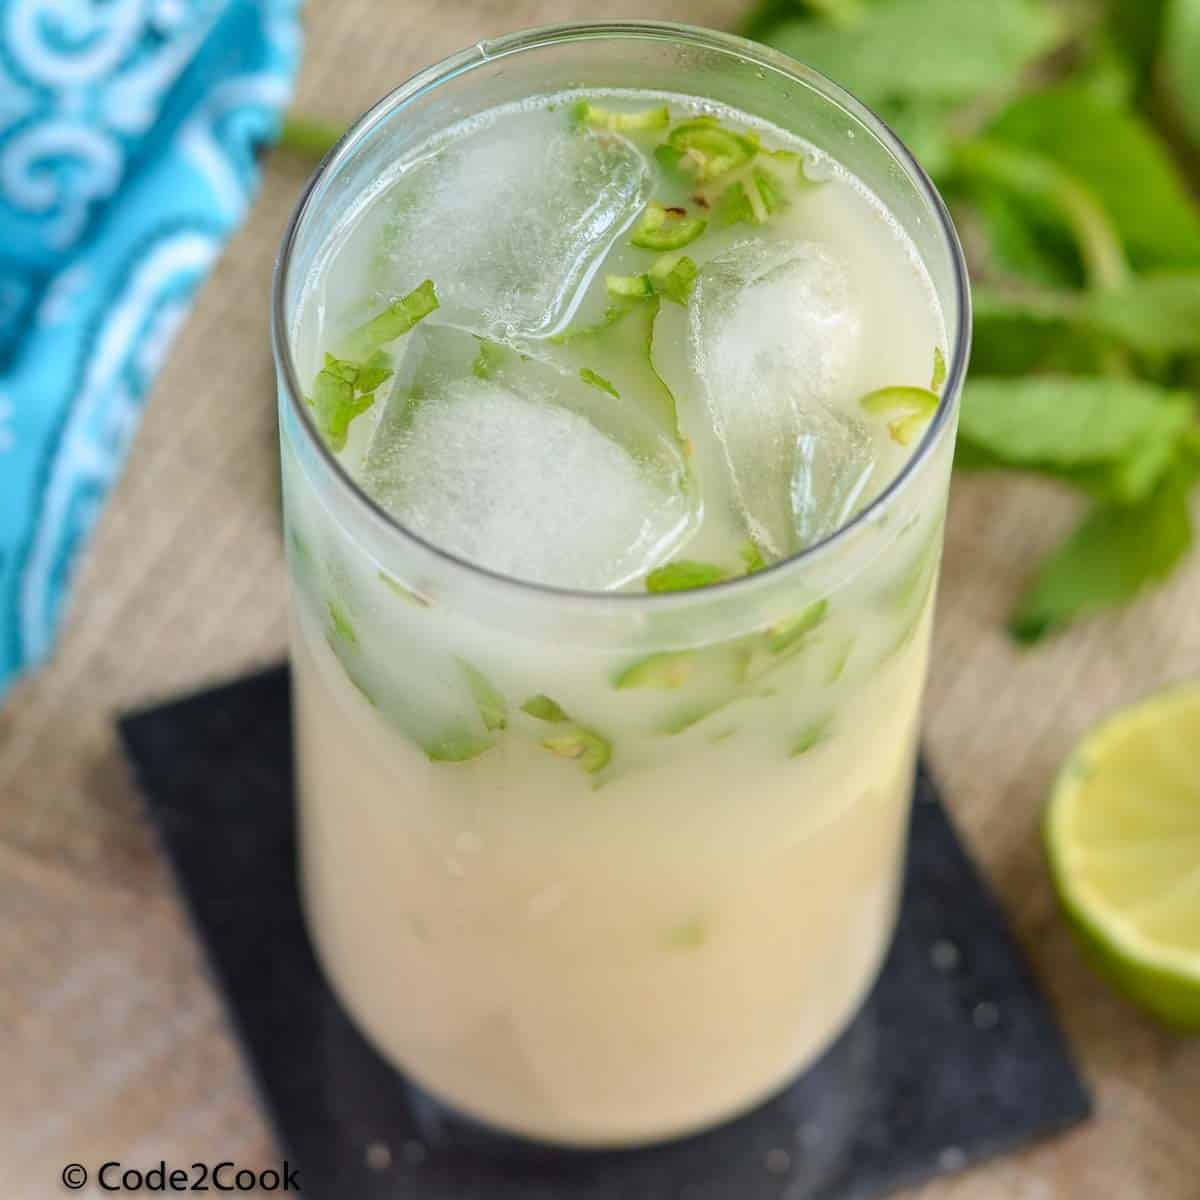 close up of sattu drink or sattu sharbat in glass with ice cubes.